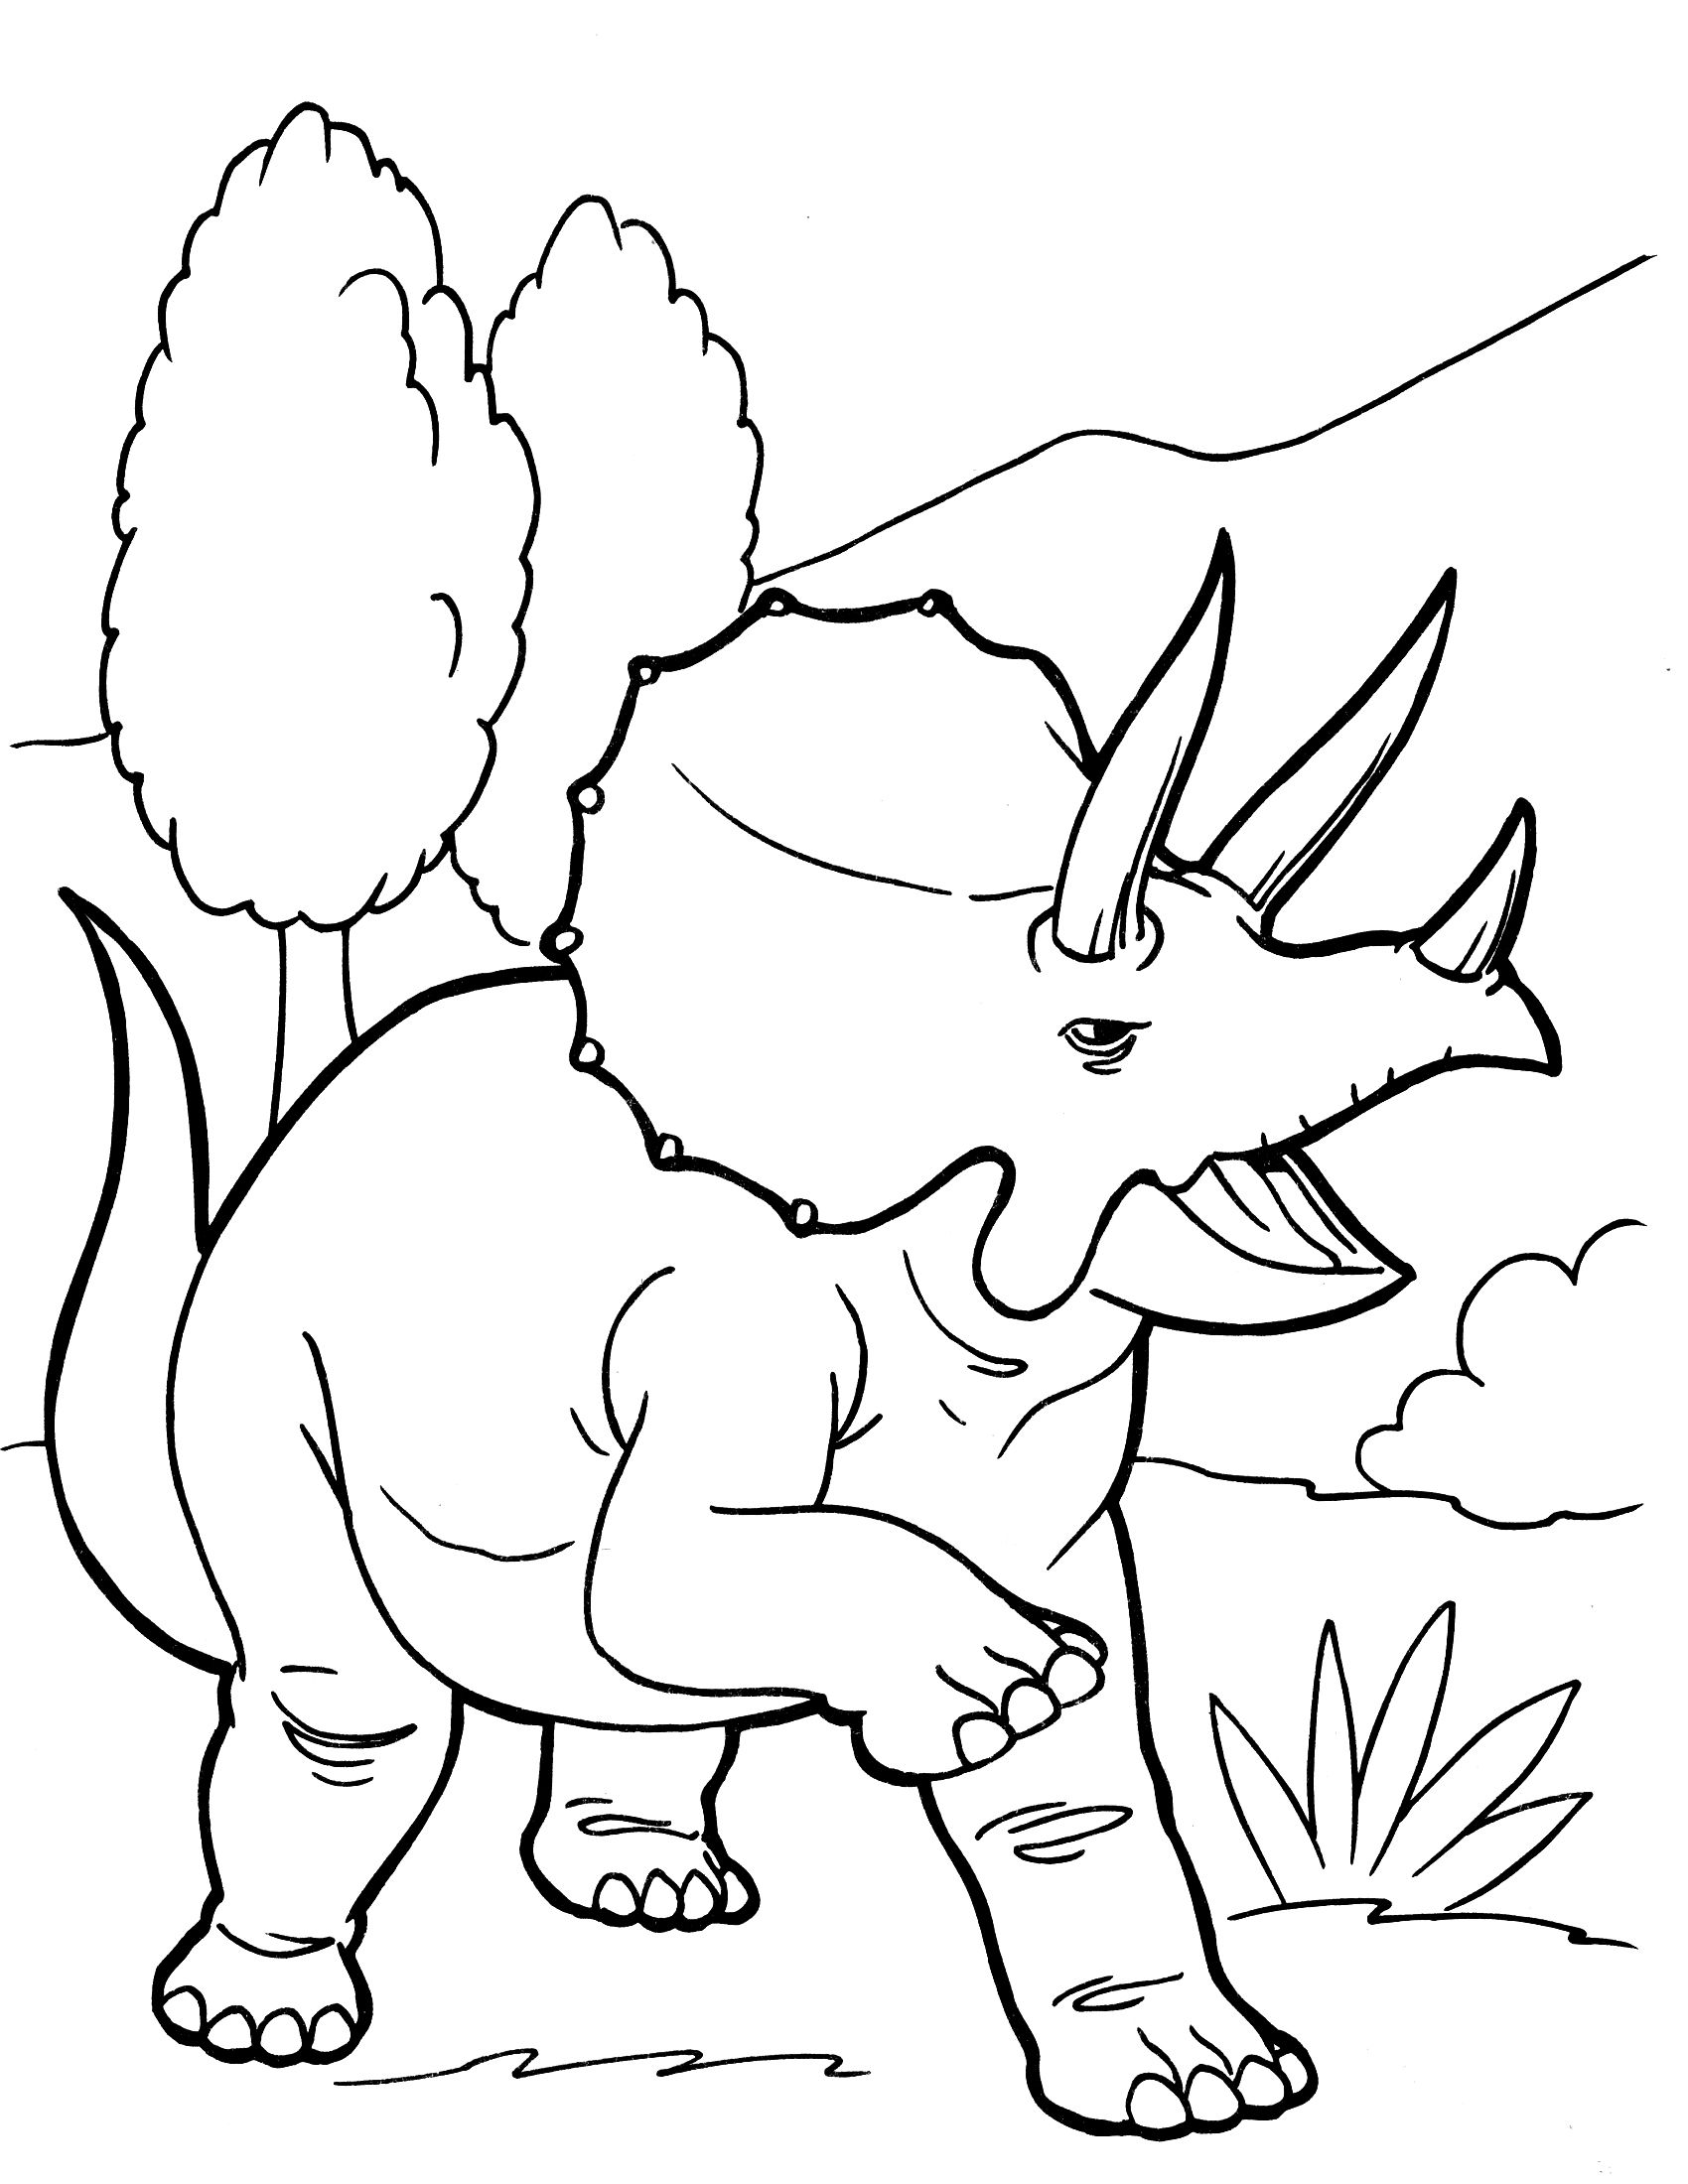 Dinosaur paintings for kids description from dinosaur painting games dinosaur coloring pages are